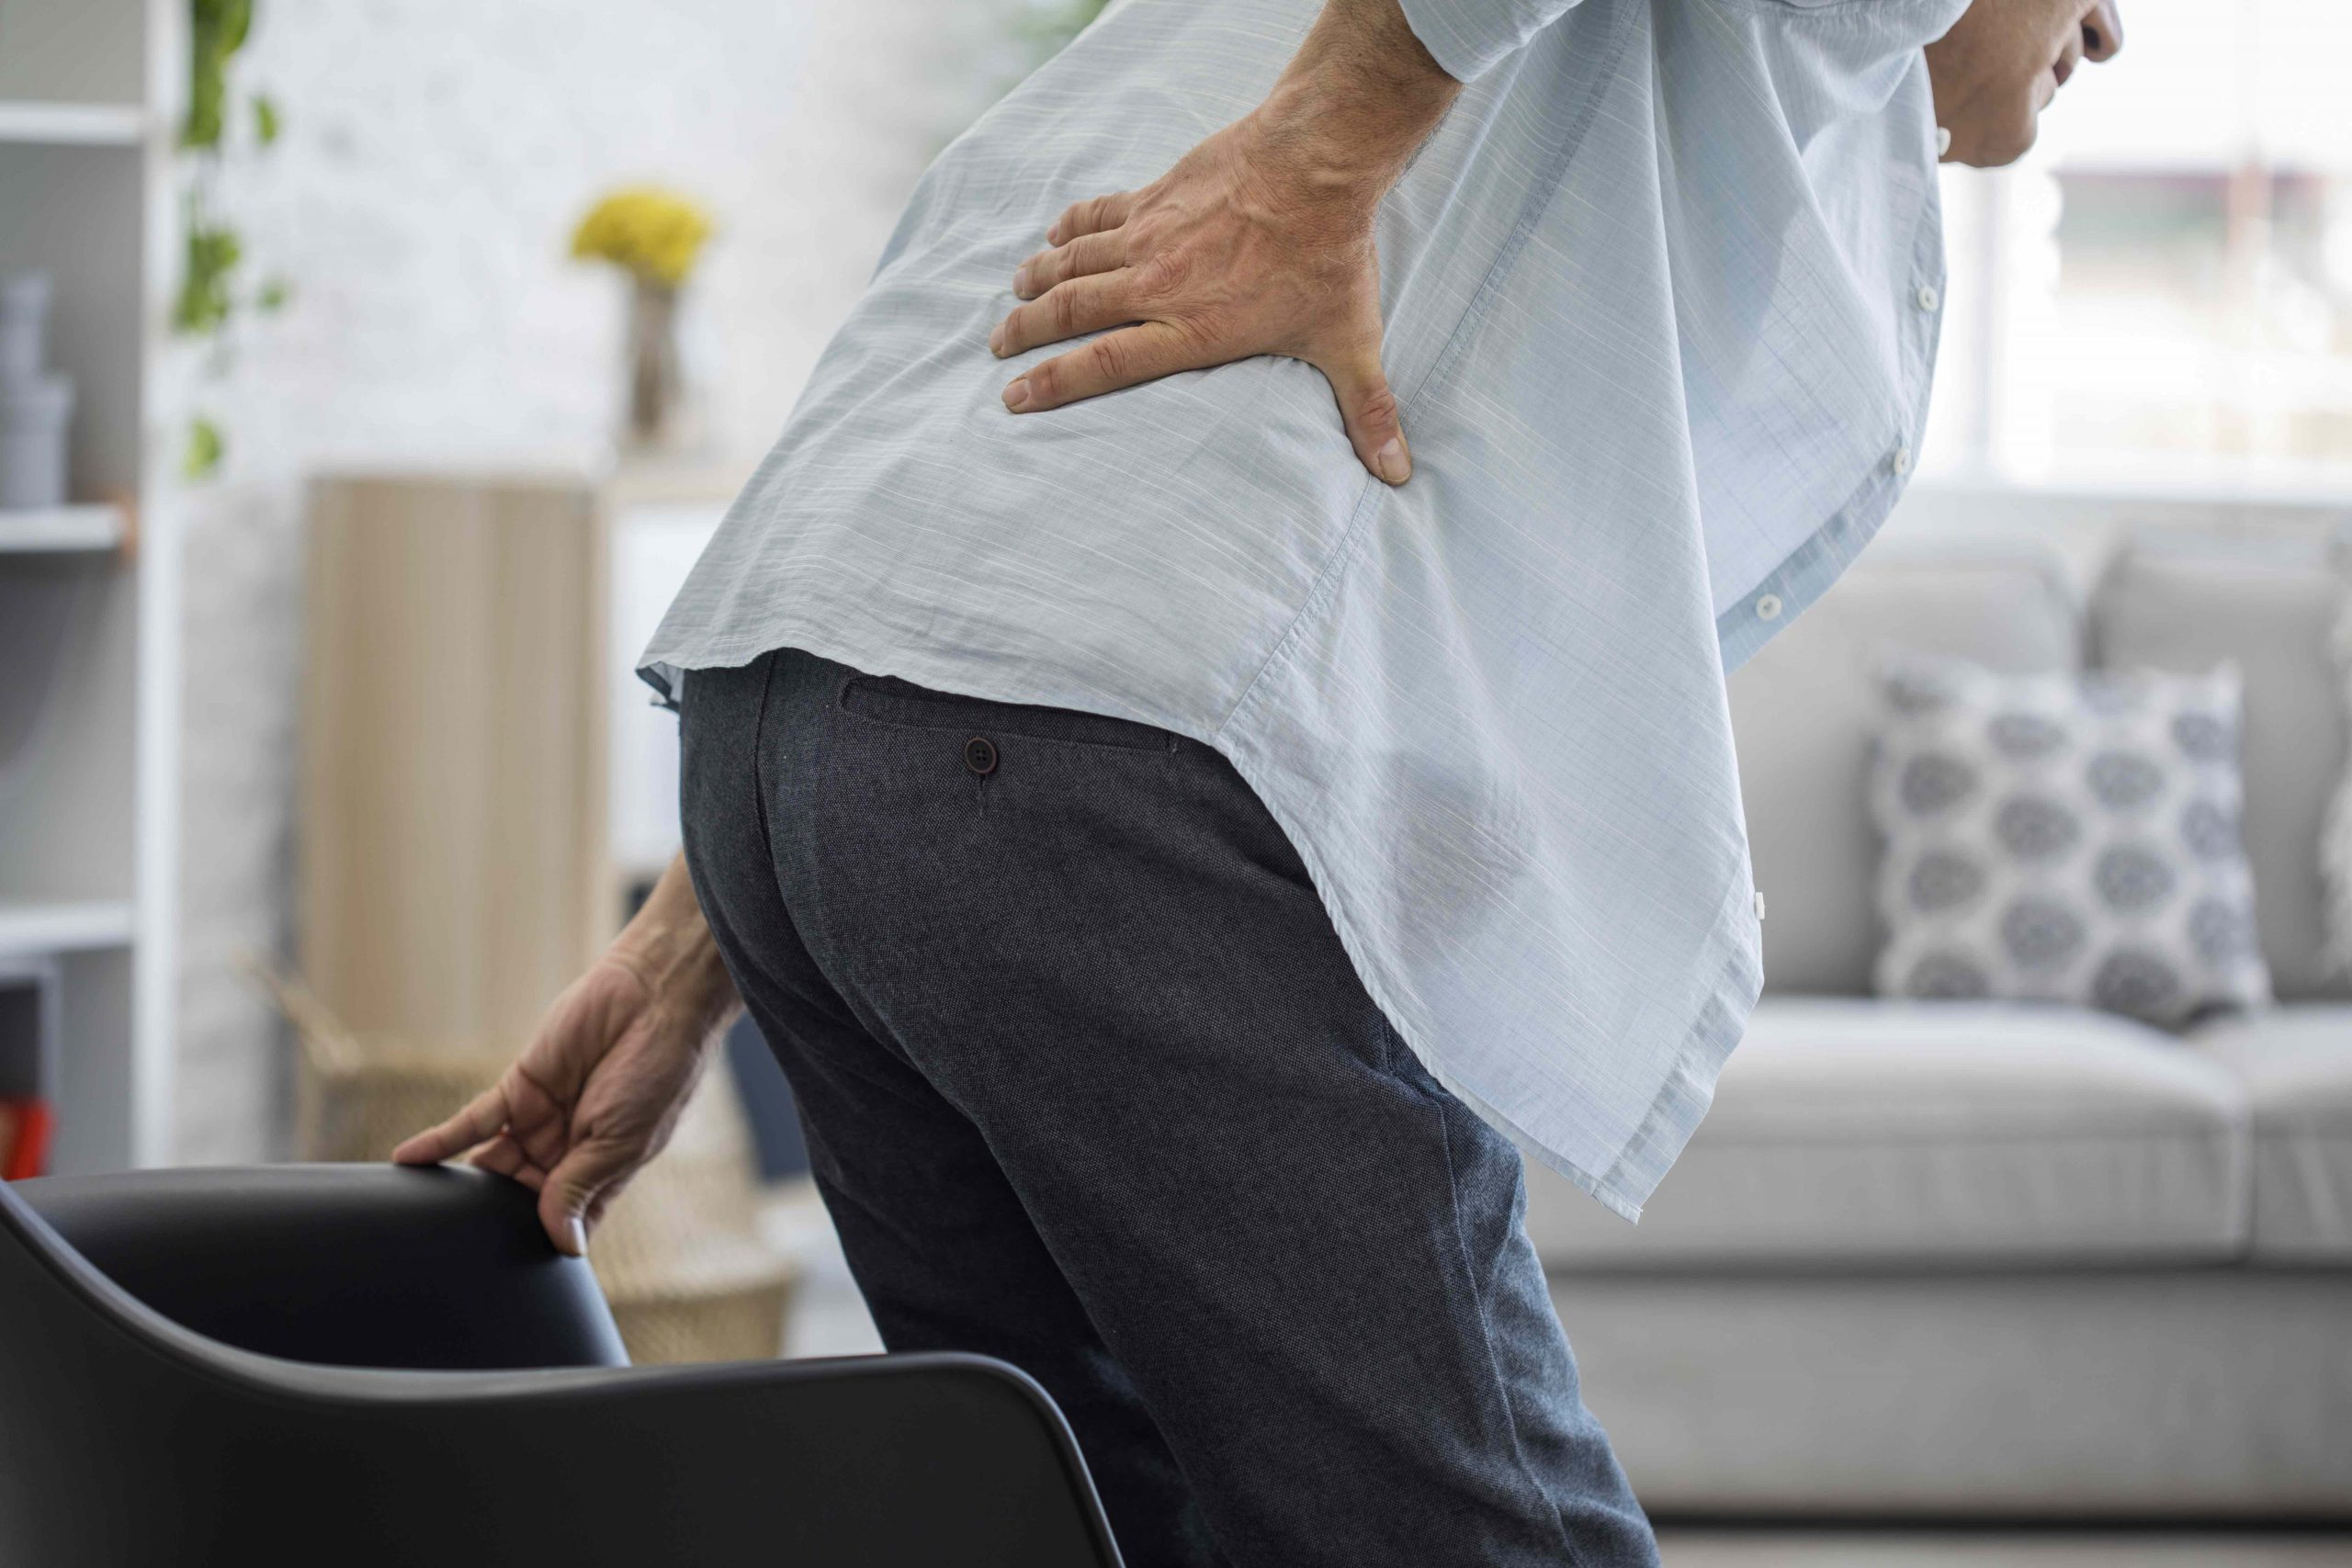 A lumbar radiofrequency ablation (RFA) is an outpatient procedure that relieves pain in the lower back,